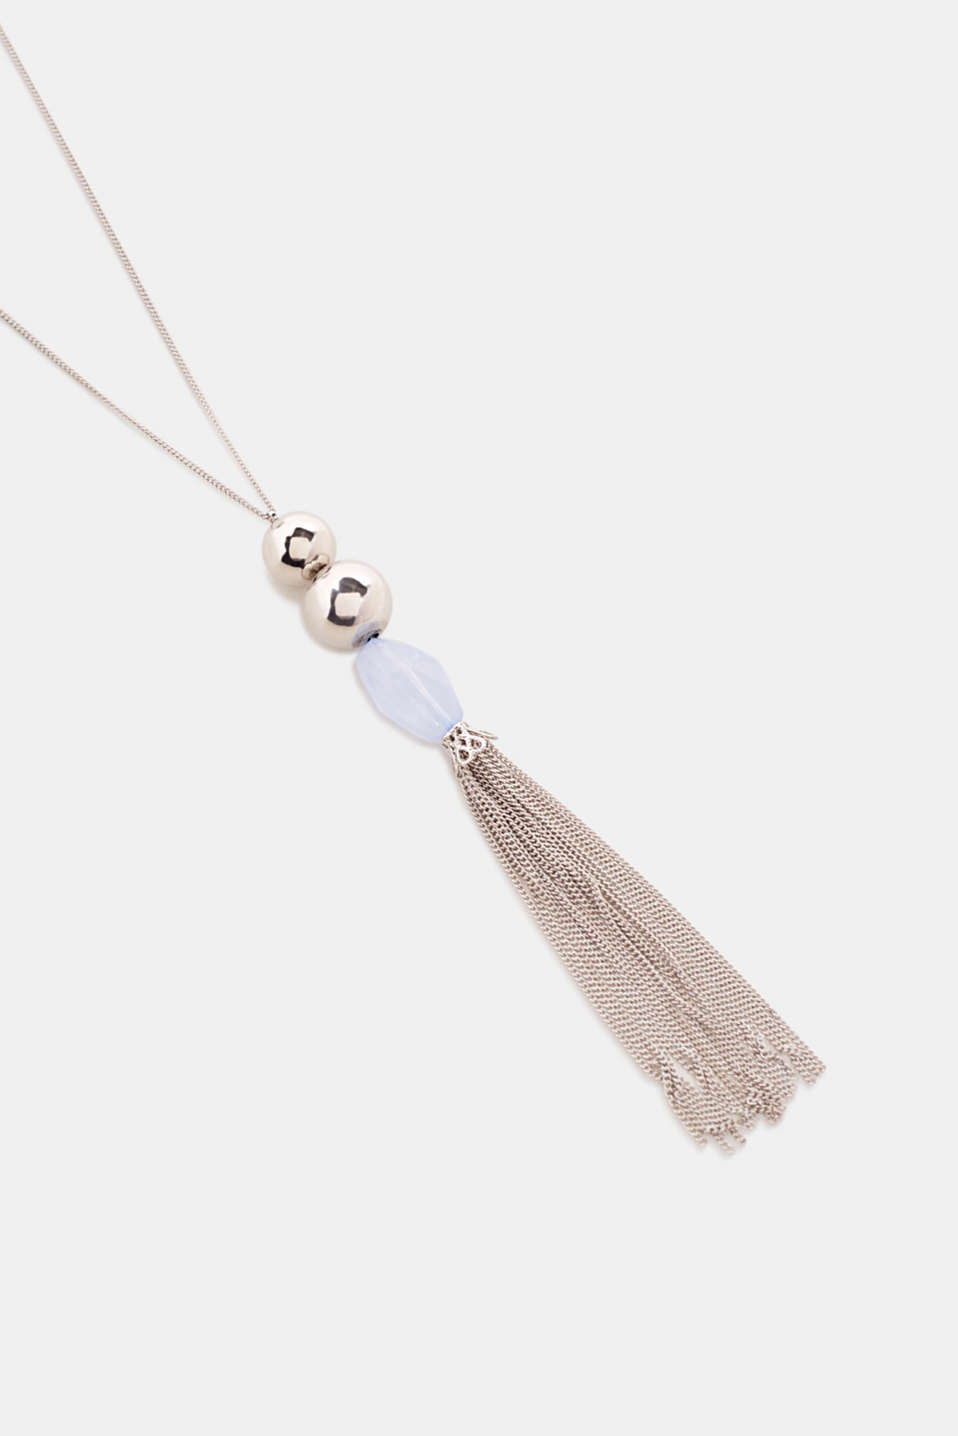 Long necklace with a pendulum pendant, SILVER, detail image number 1